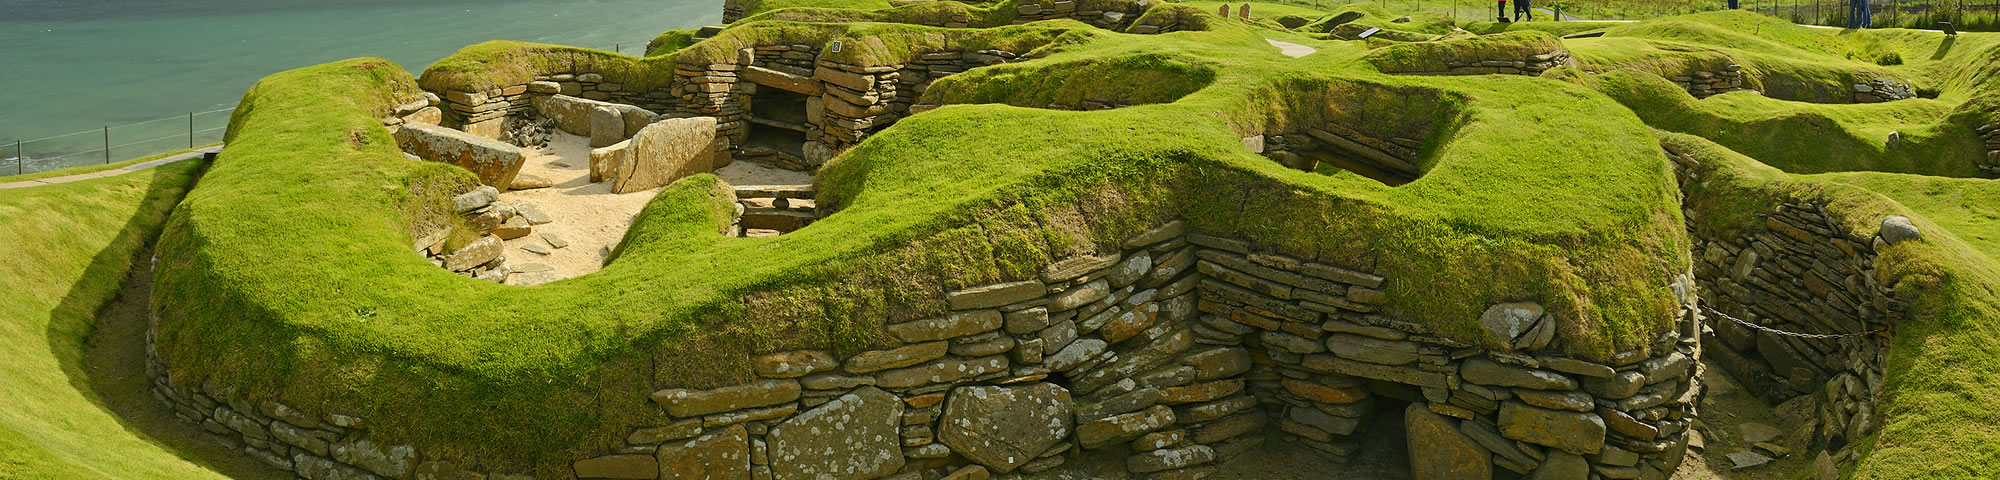 Skara Brae, Part of the Heart of Neolithic Orkney